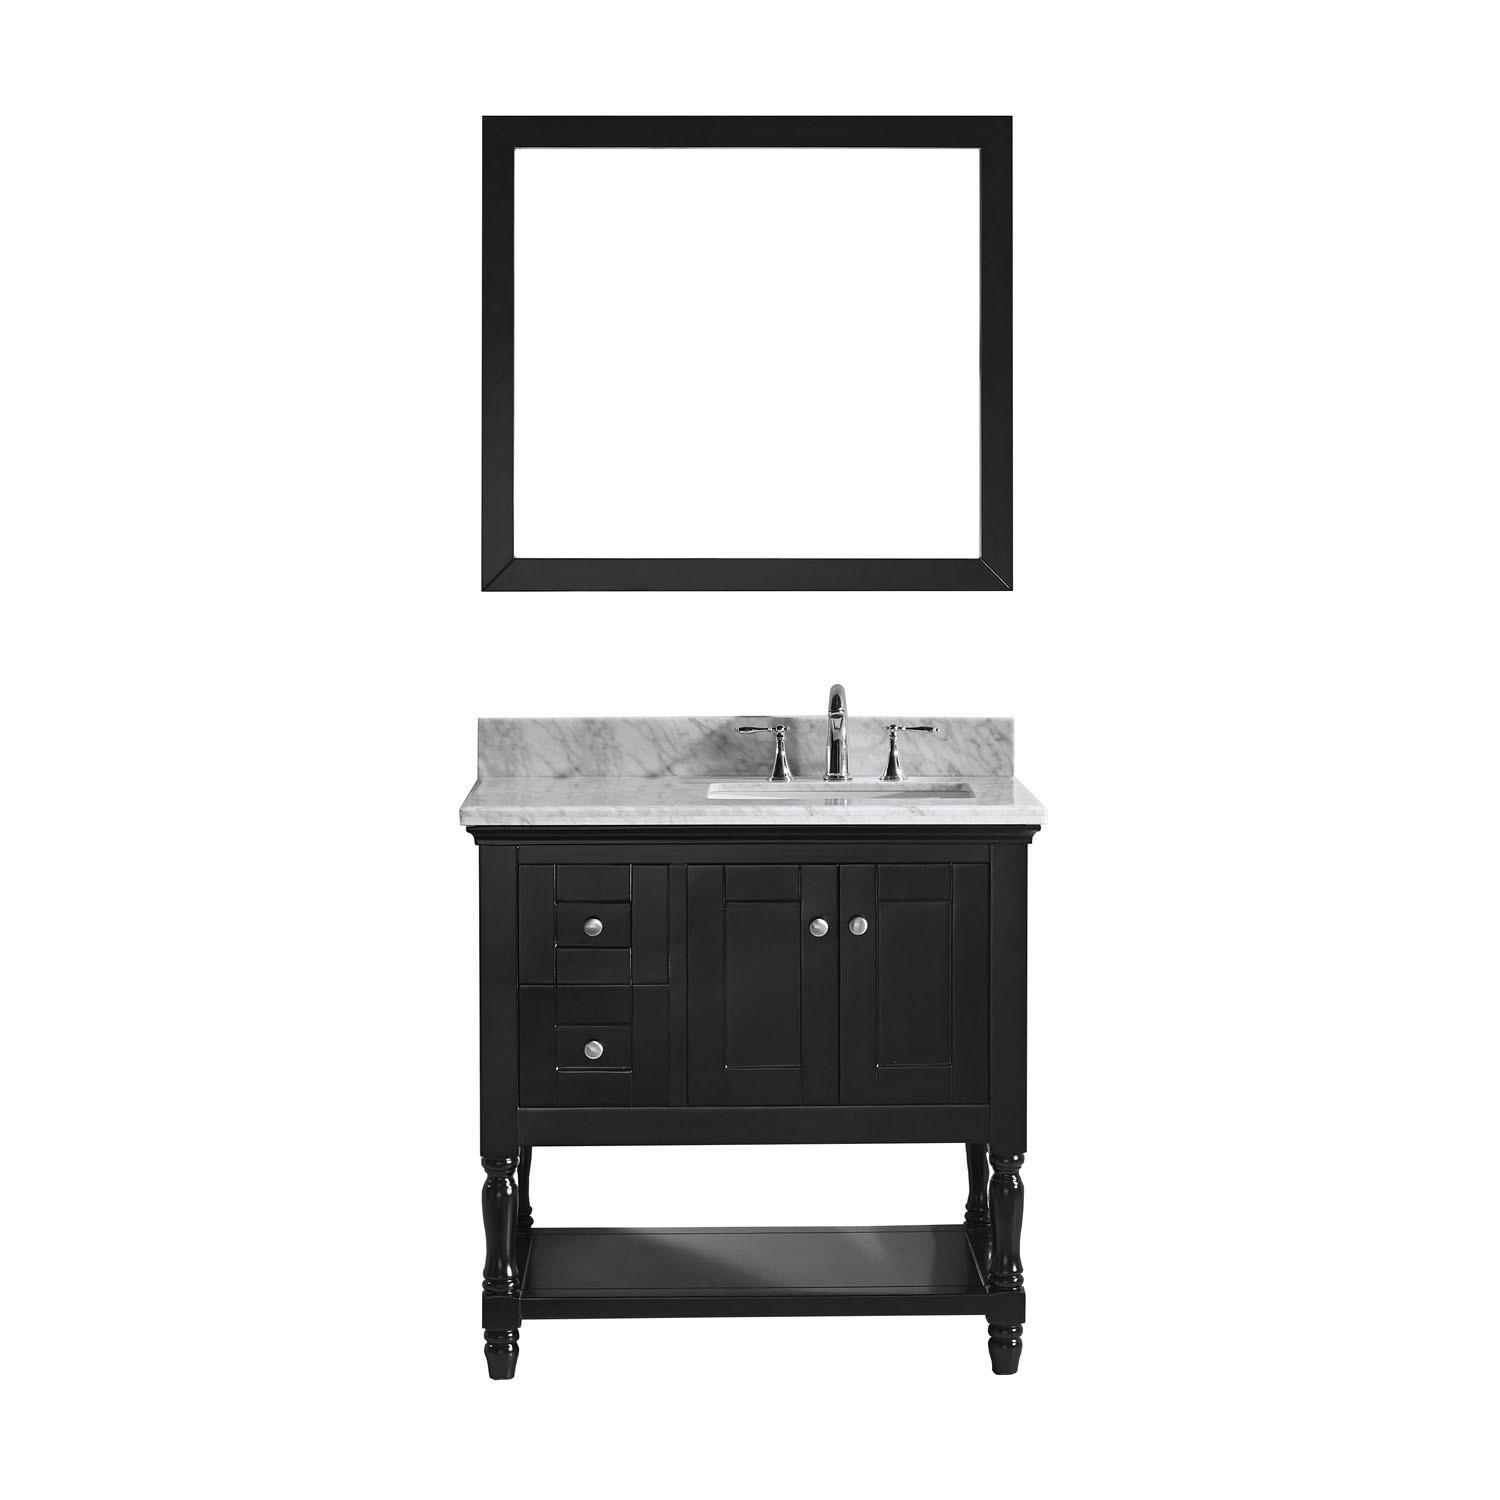 VIRTU MS-3136-WMSQ-ES-002 Julianna 36 Inch Single Bathroom Vanity Set In Espresso